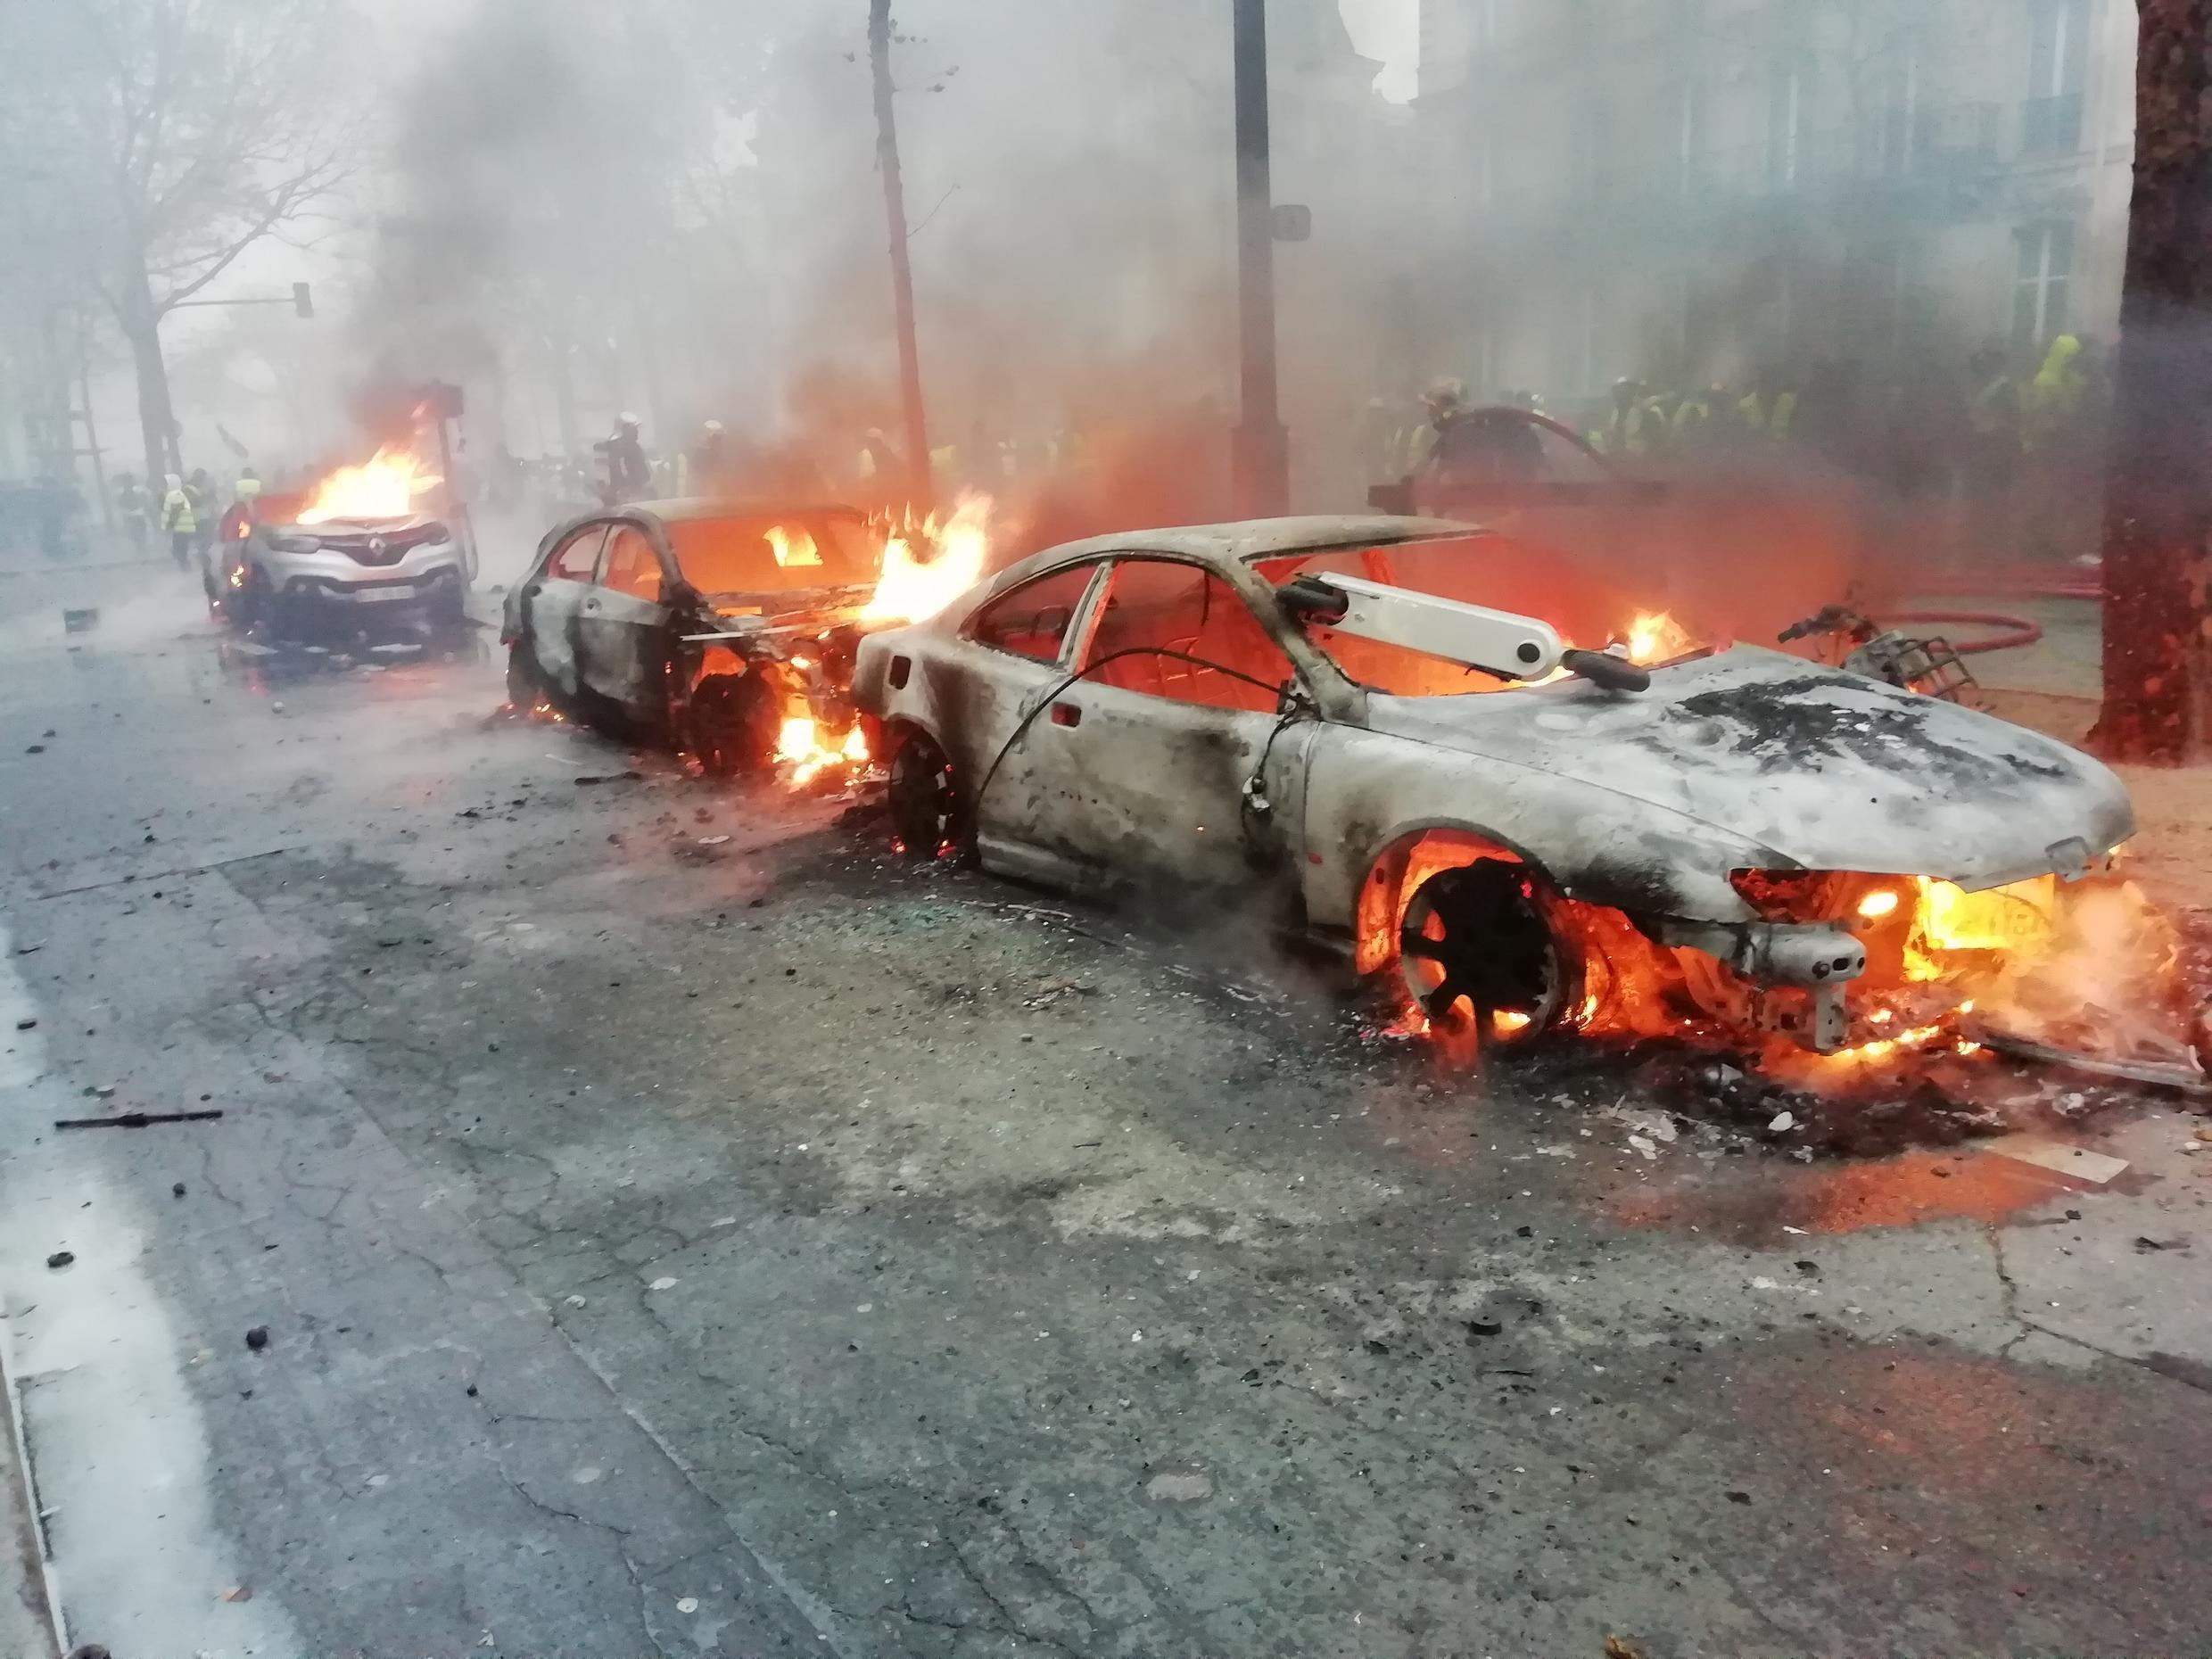 Firefighters arrive to extinguish three torched cars.